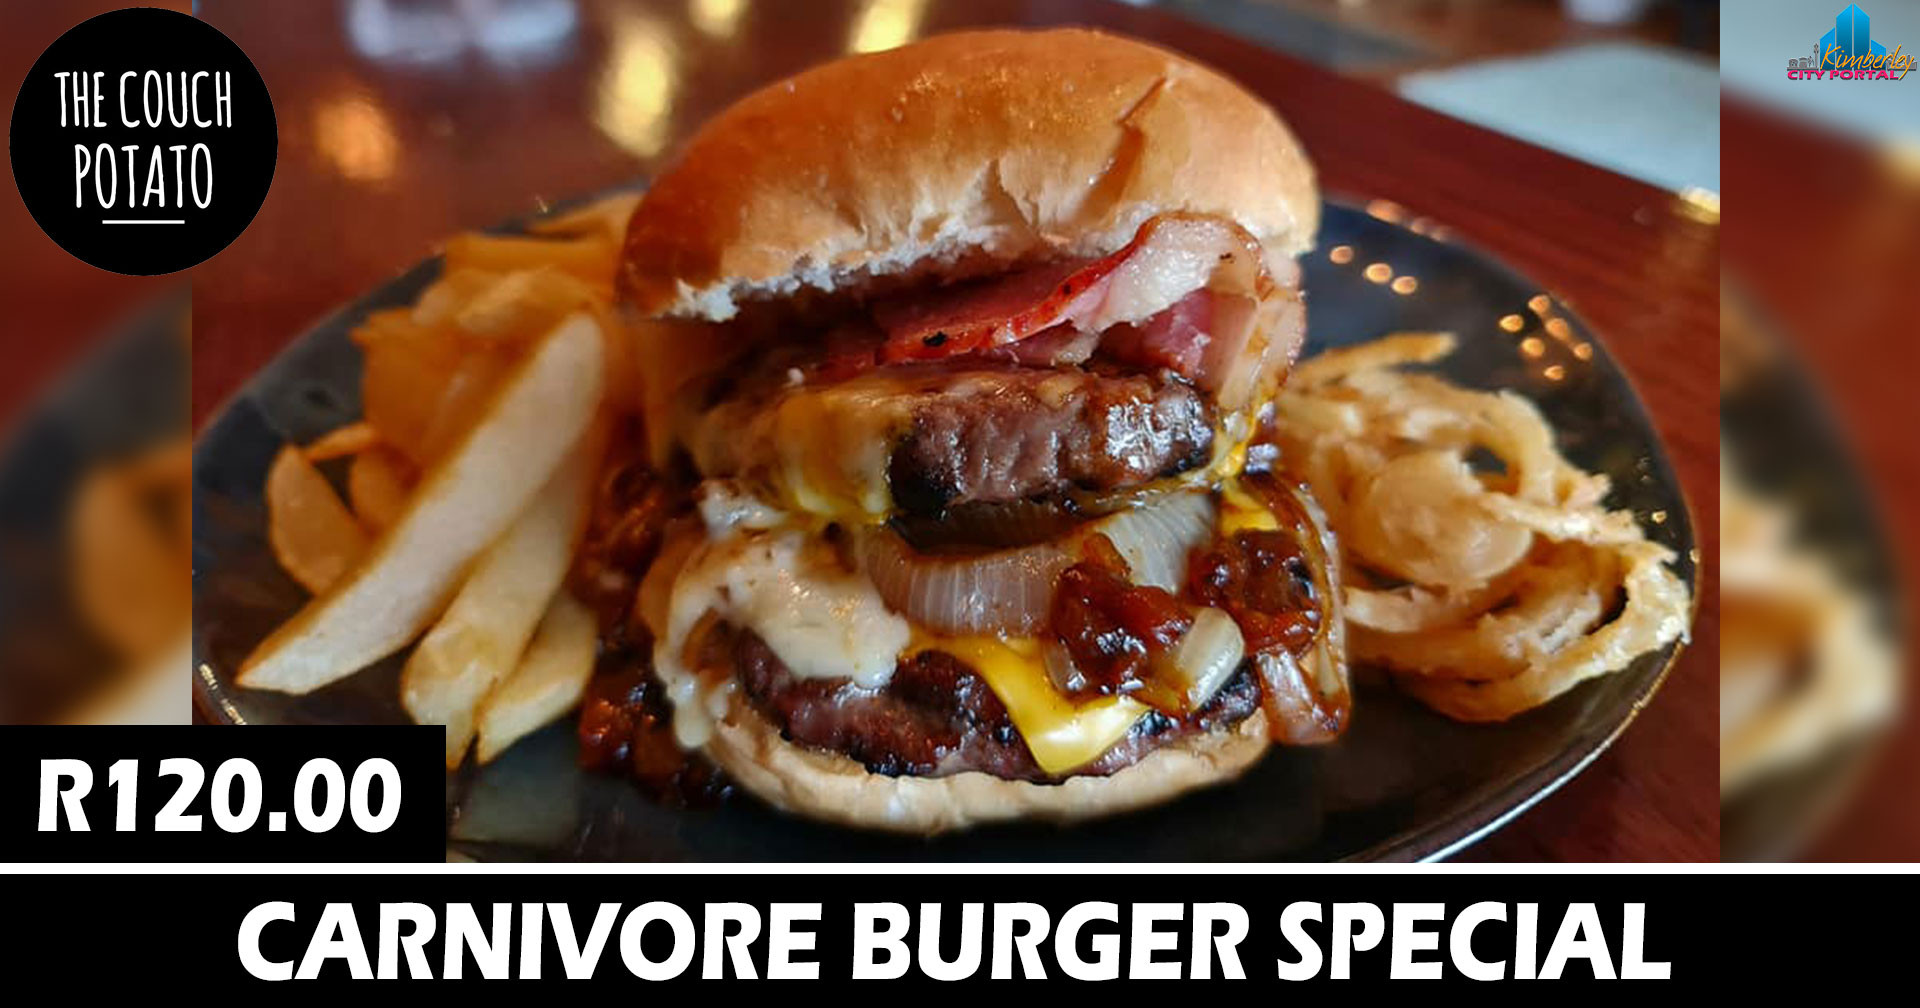 THE_COUCH_POTATO-Carnivore_Burger_Special-KCP-SP-20210210-v1_00a